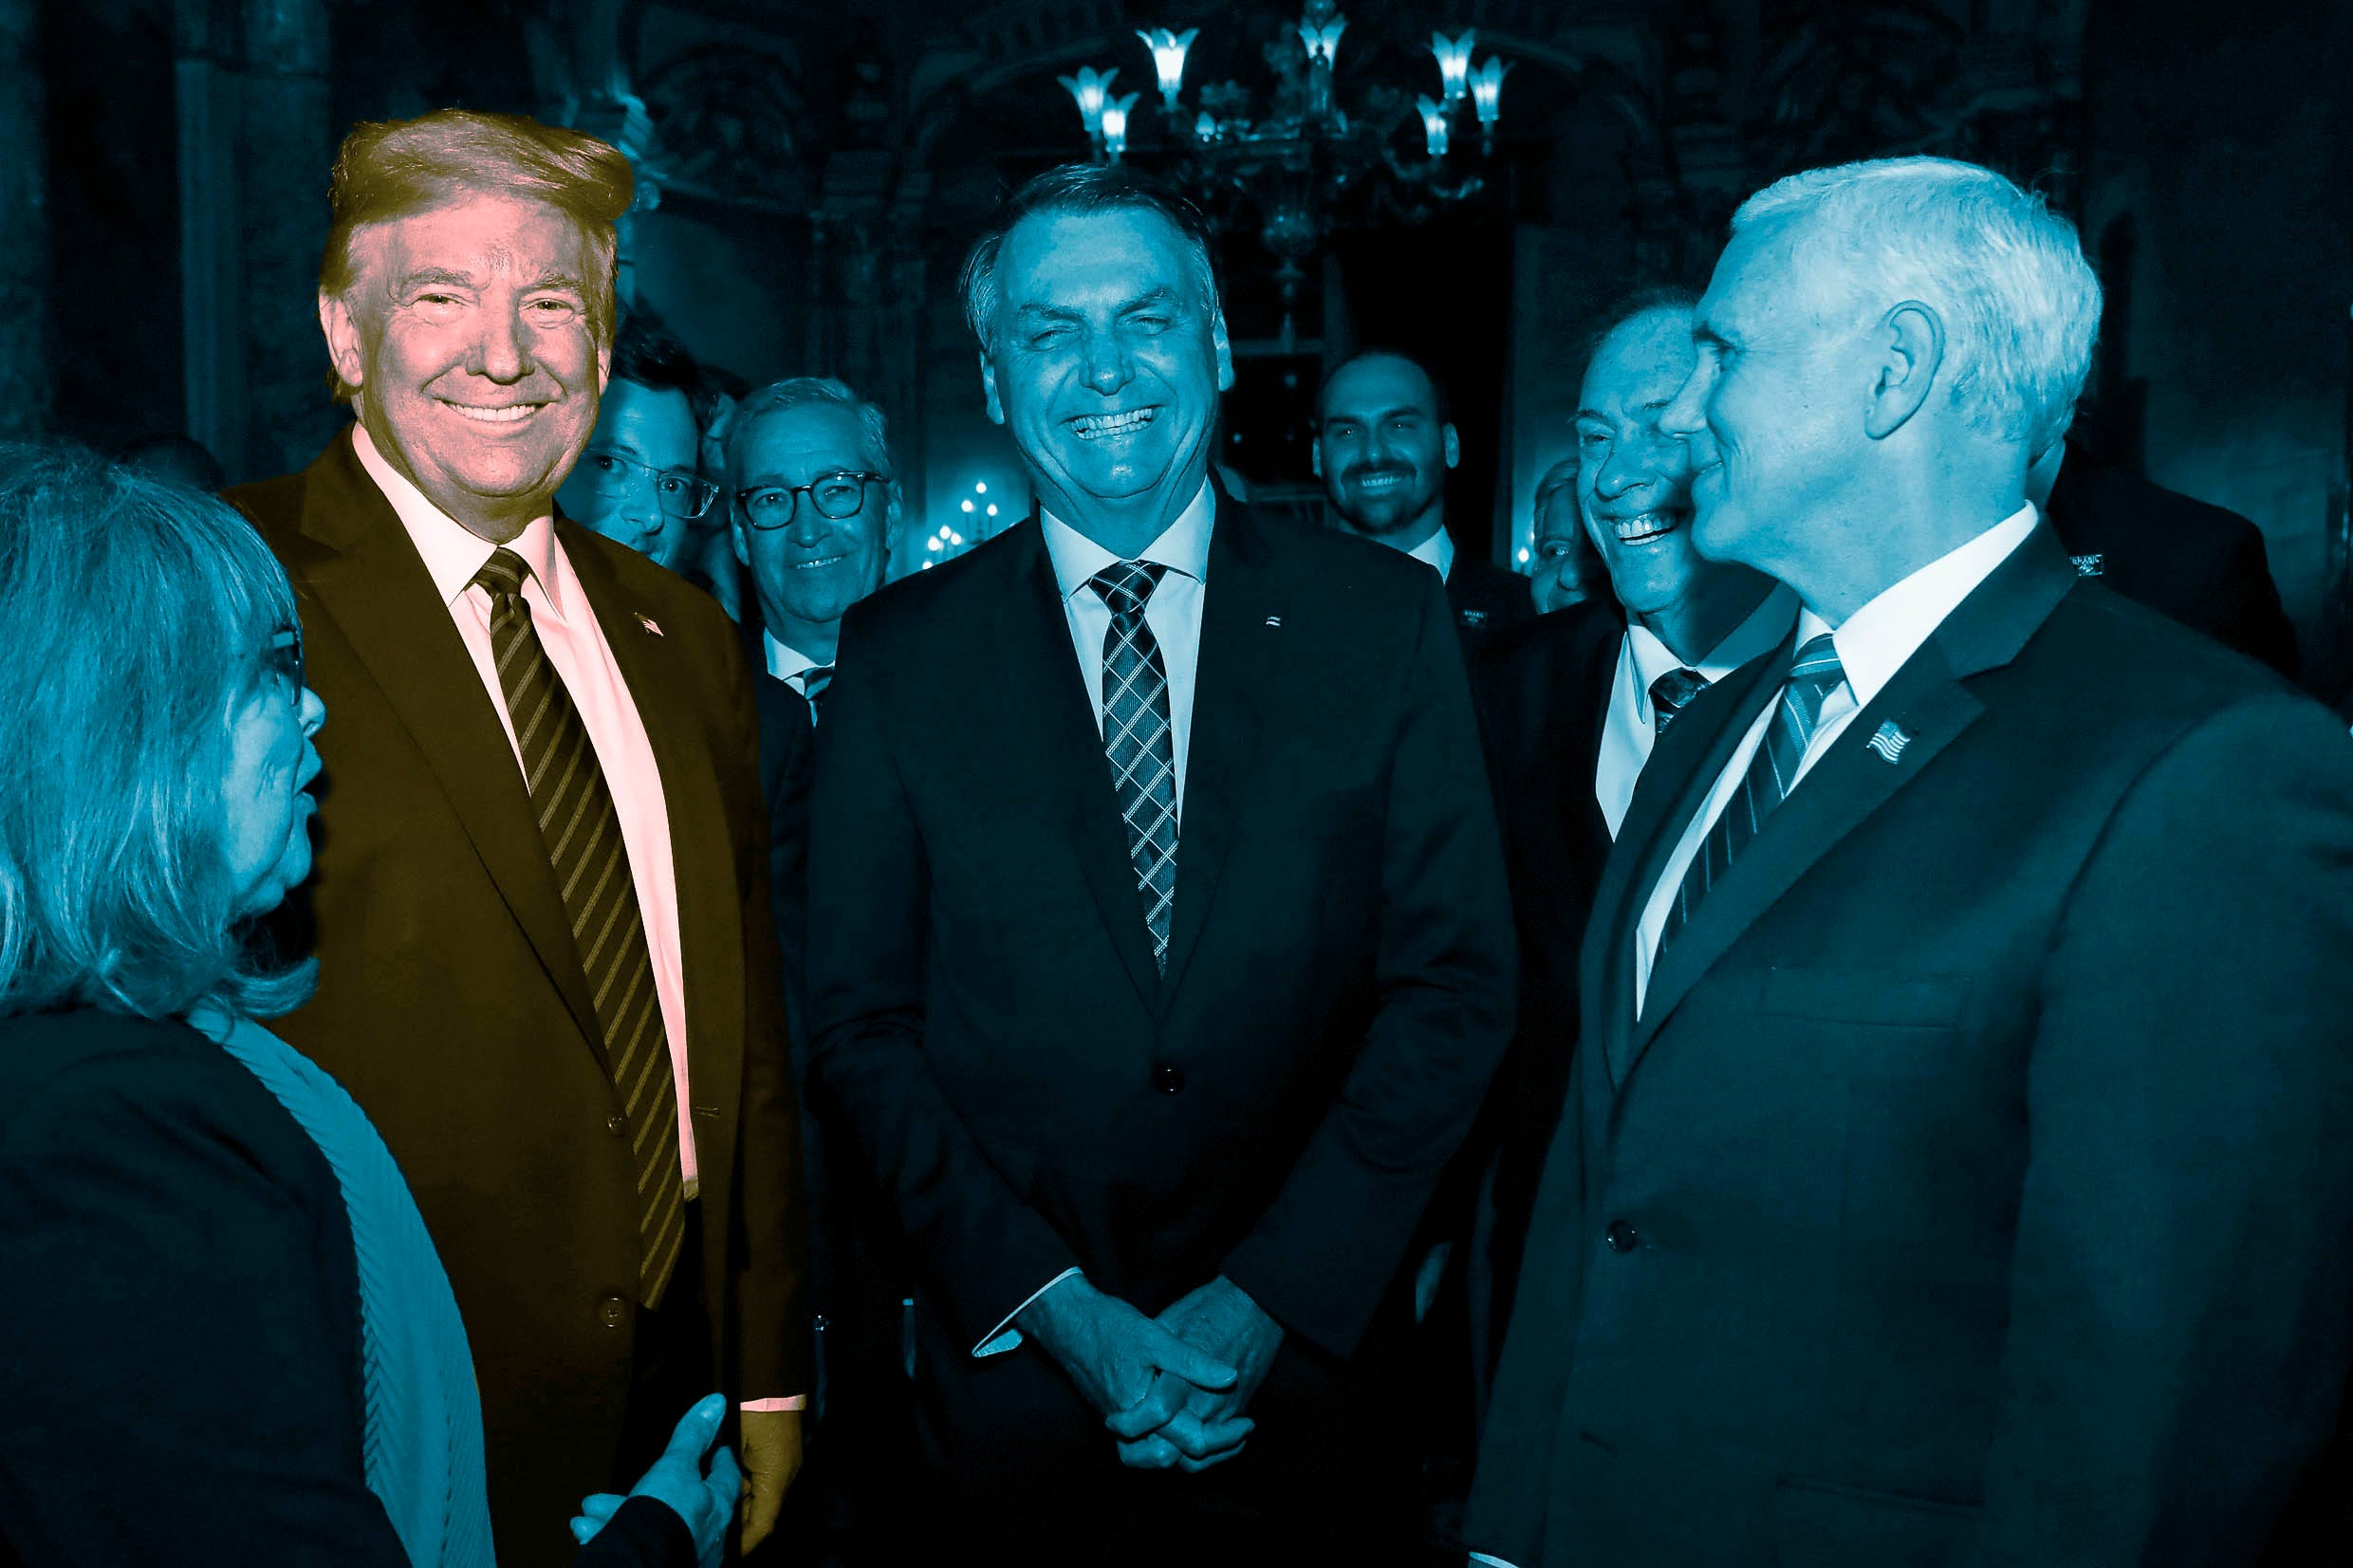 MARCH 7: Brazil's President Jair Bolsonaro, center, stands with President Donald Trump, second from left, Vice President Mike Pence, right, and Brazil's Communications Director Fabio Wajngarten, behind Trump partially covered, during a dinner in Florida.